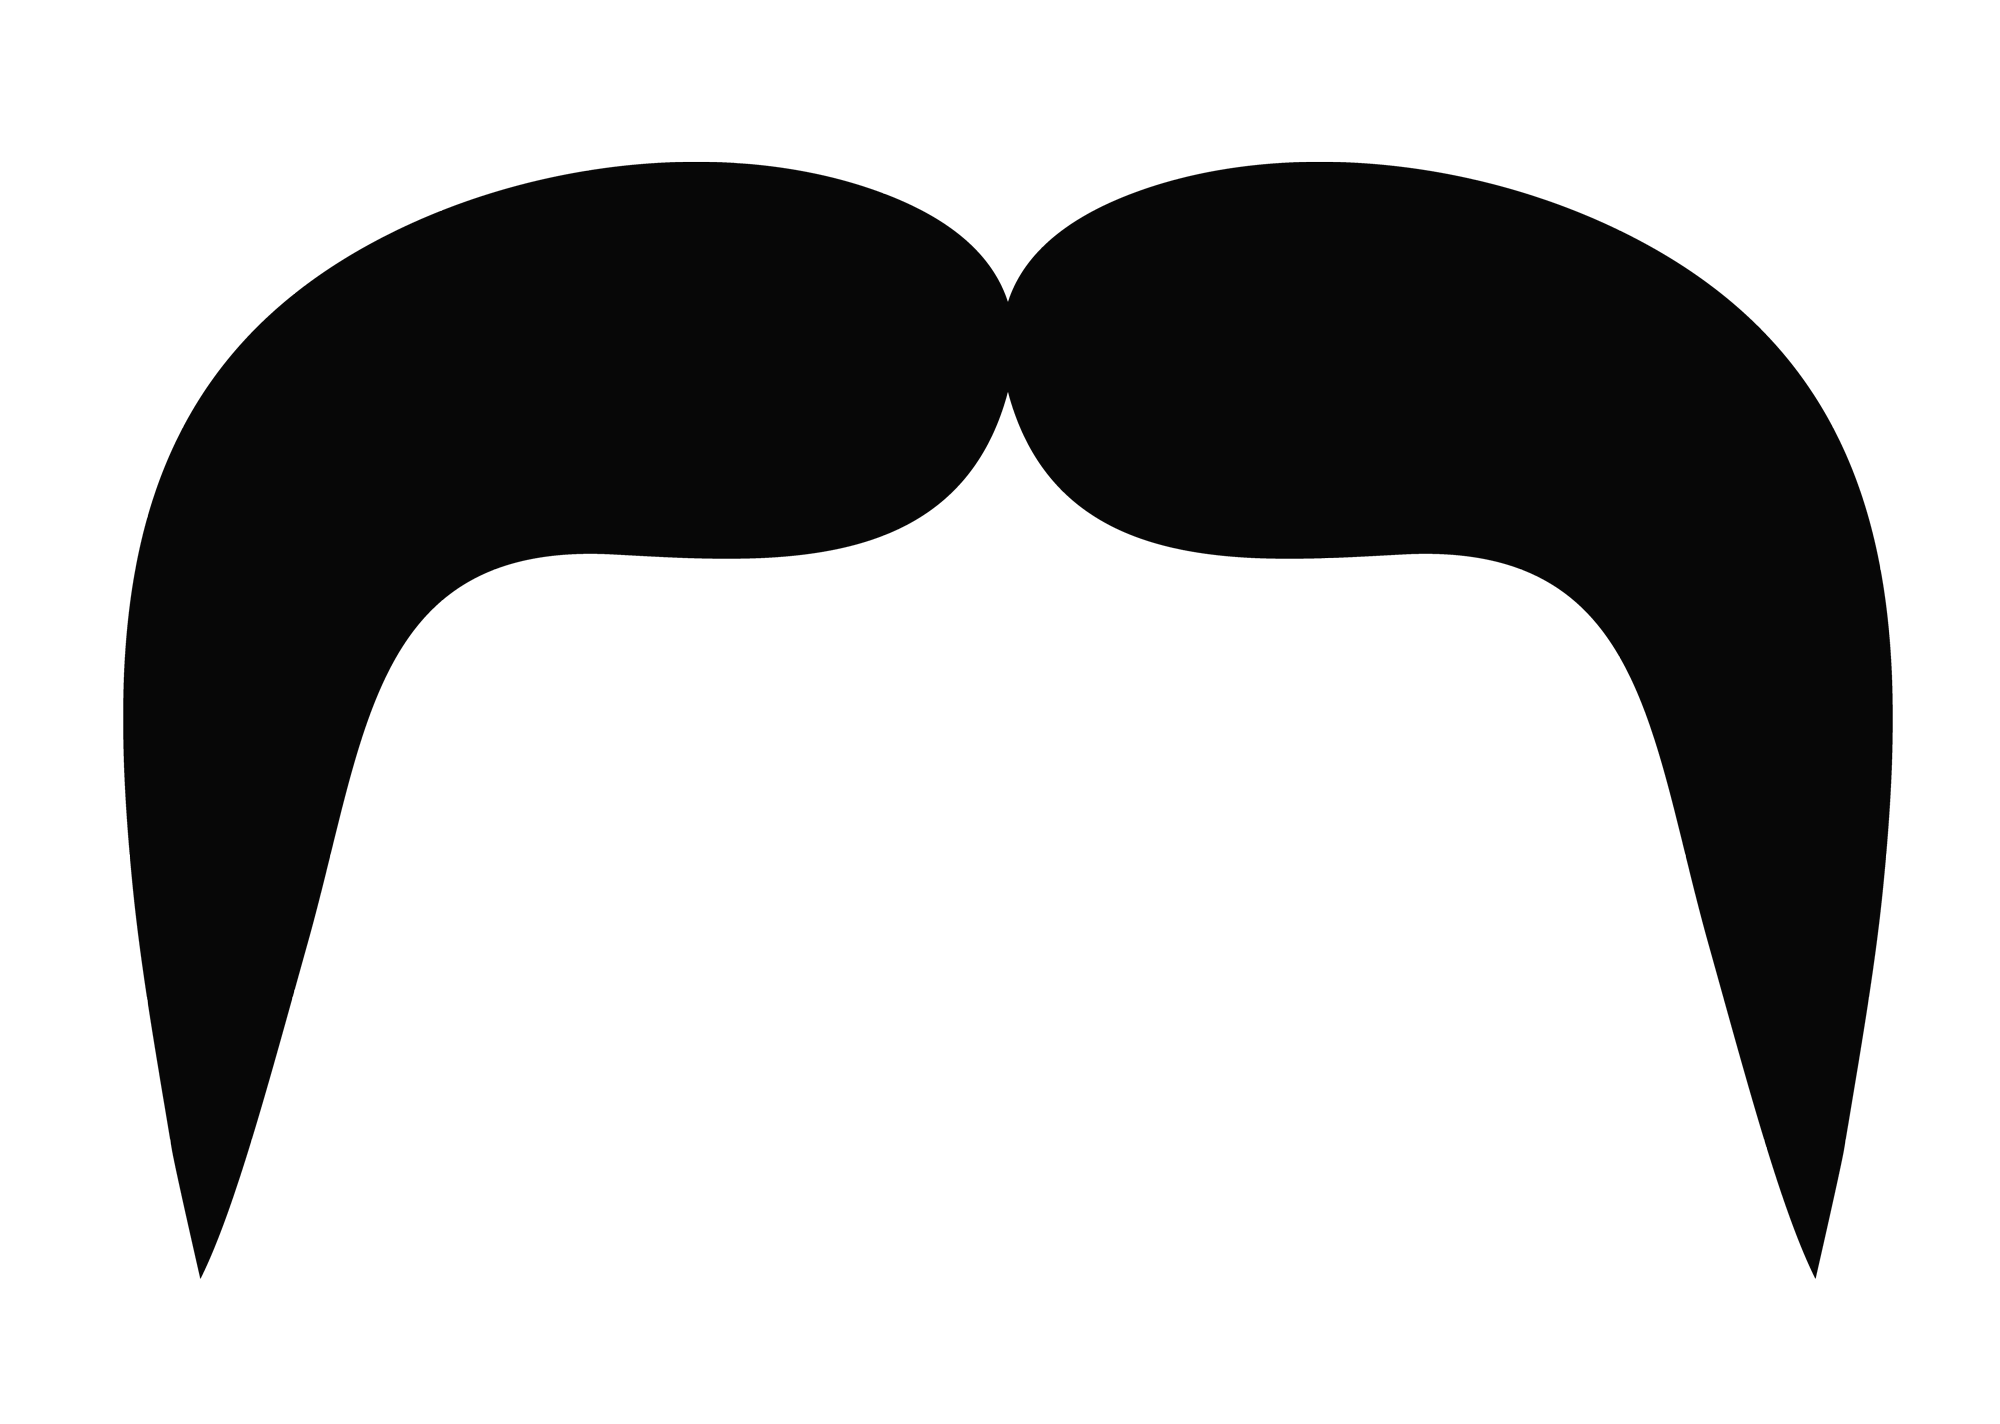 Moustache png. Silhouette at getdrawings com